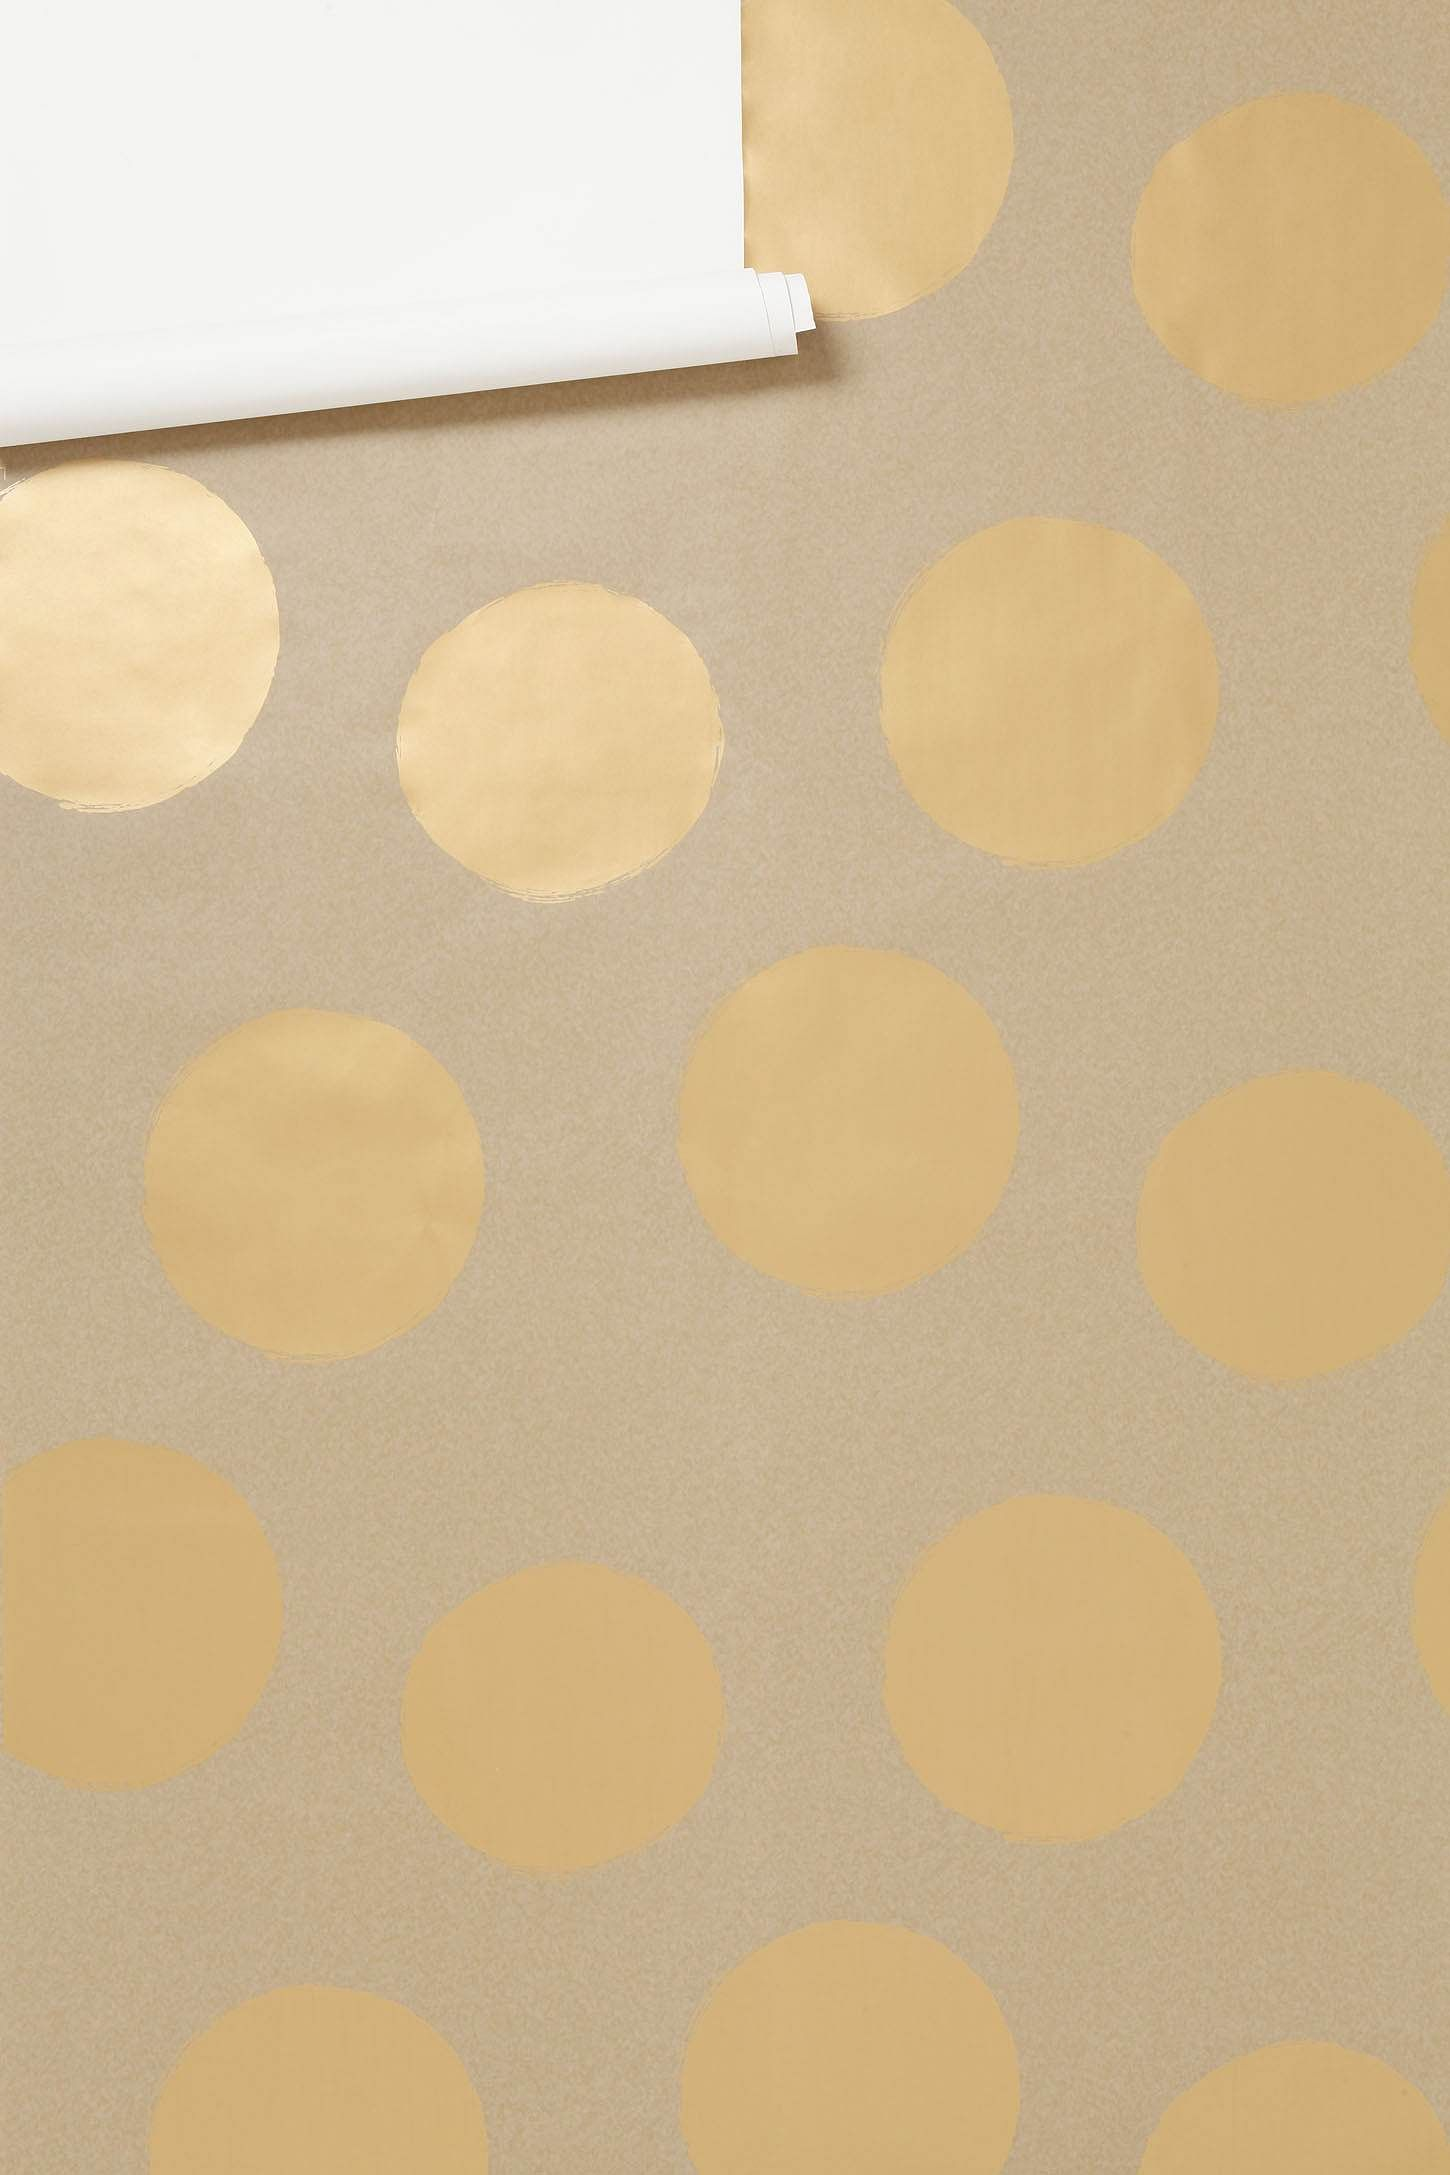 Badezimmer Wallpaper Hd Gold Polka Dot Wallpaper From Anthropologie Wallcoverings